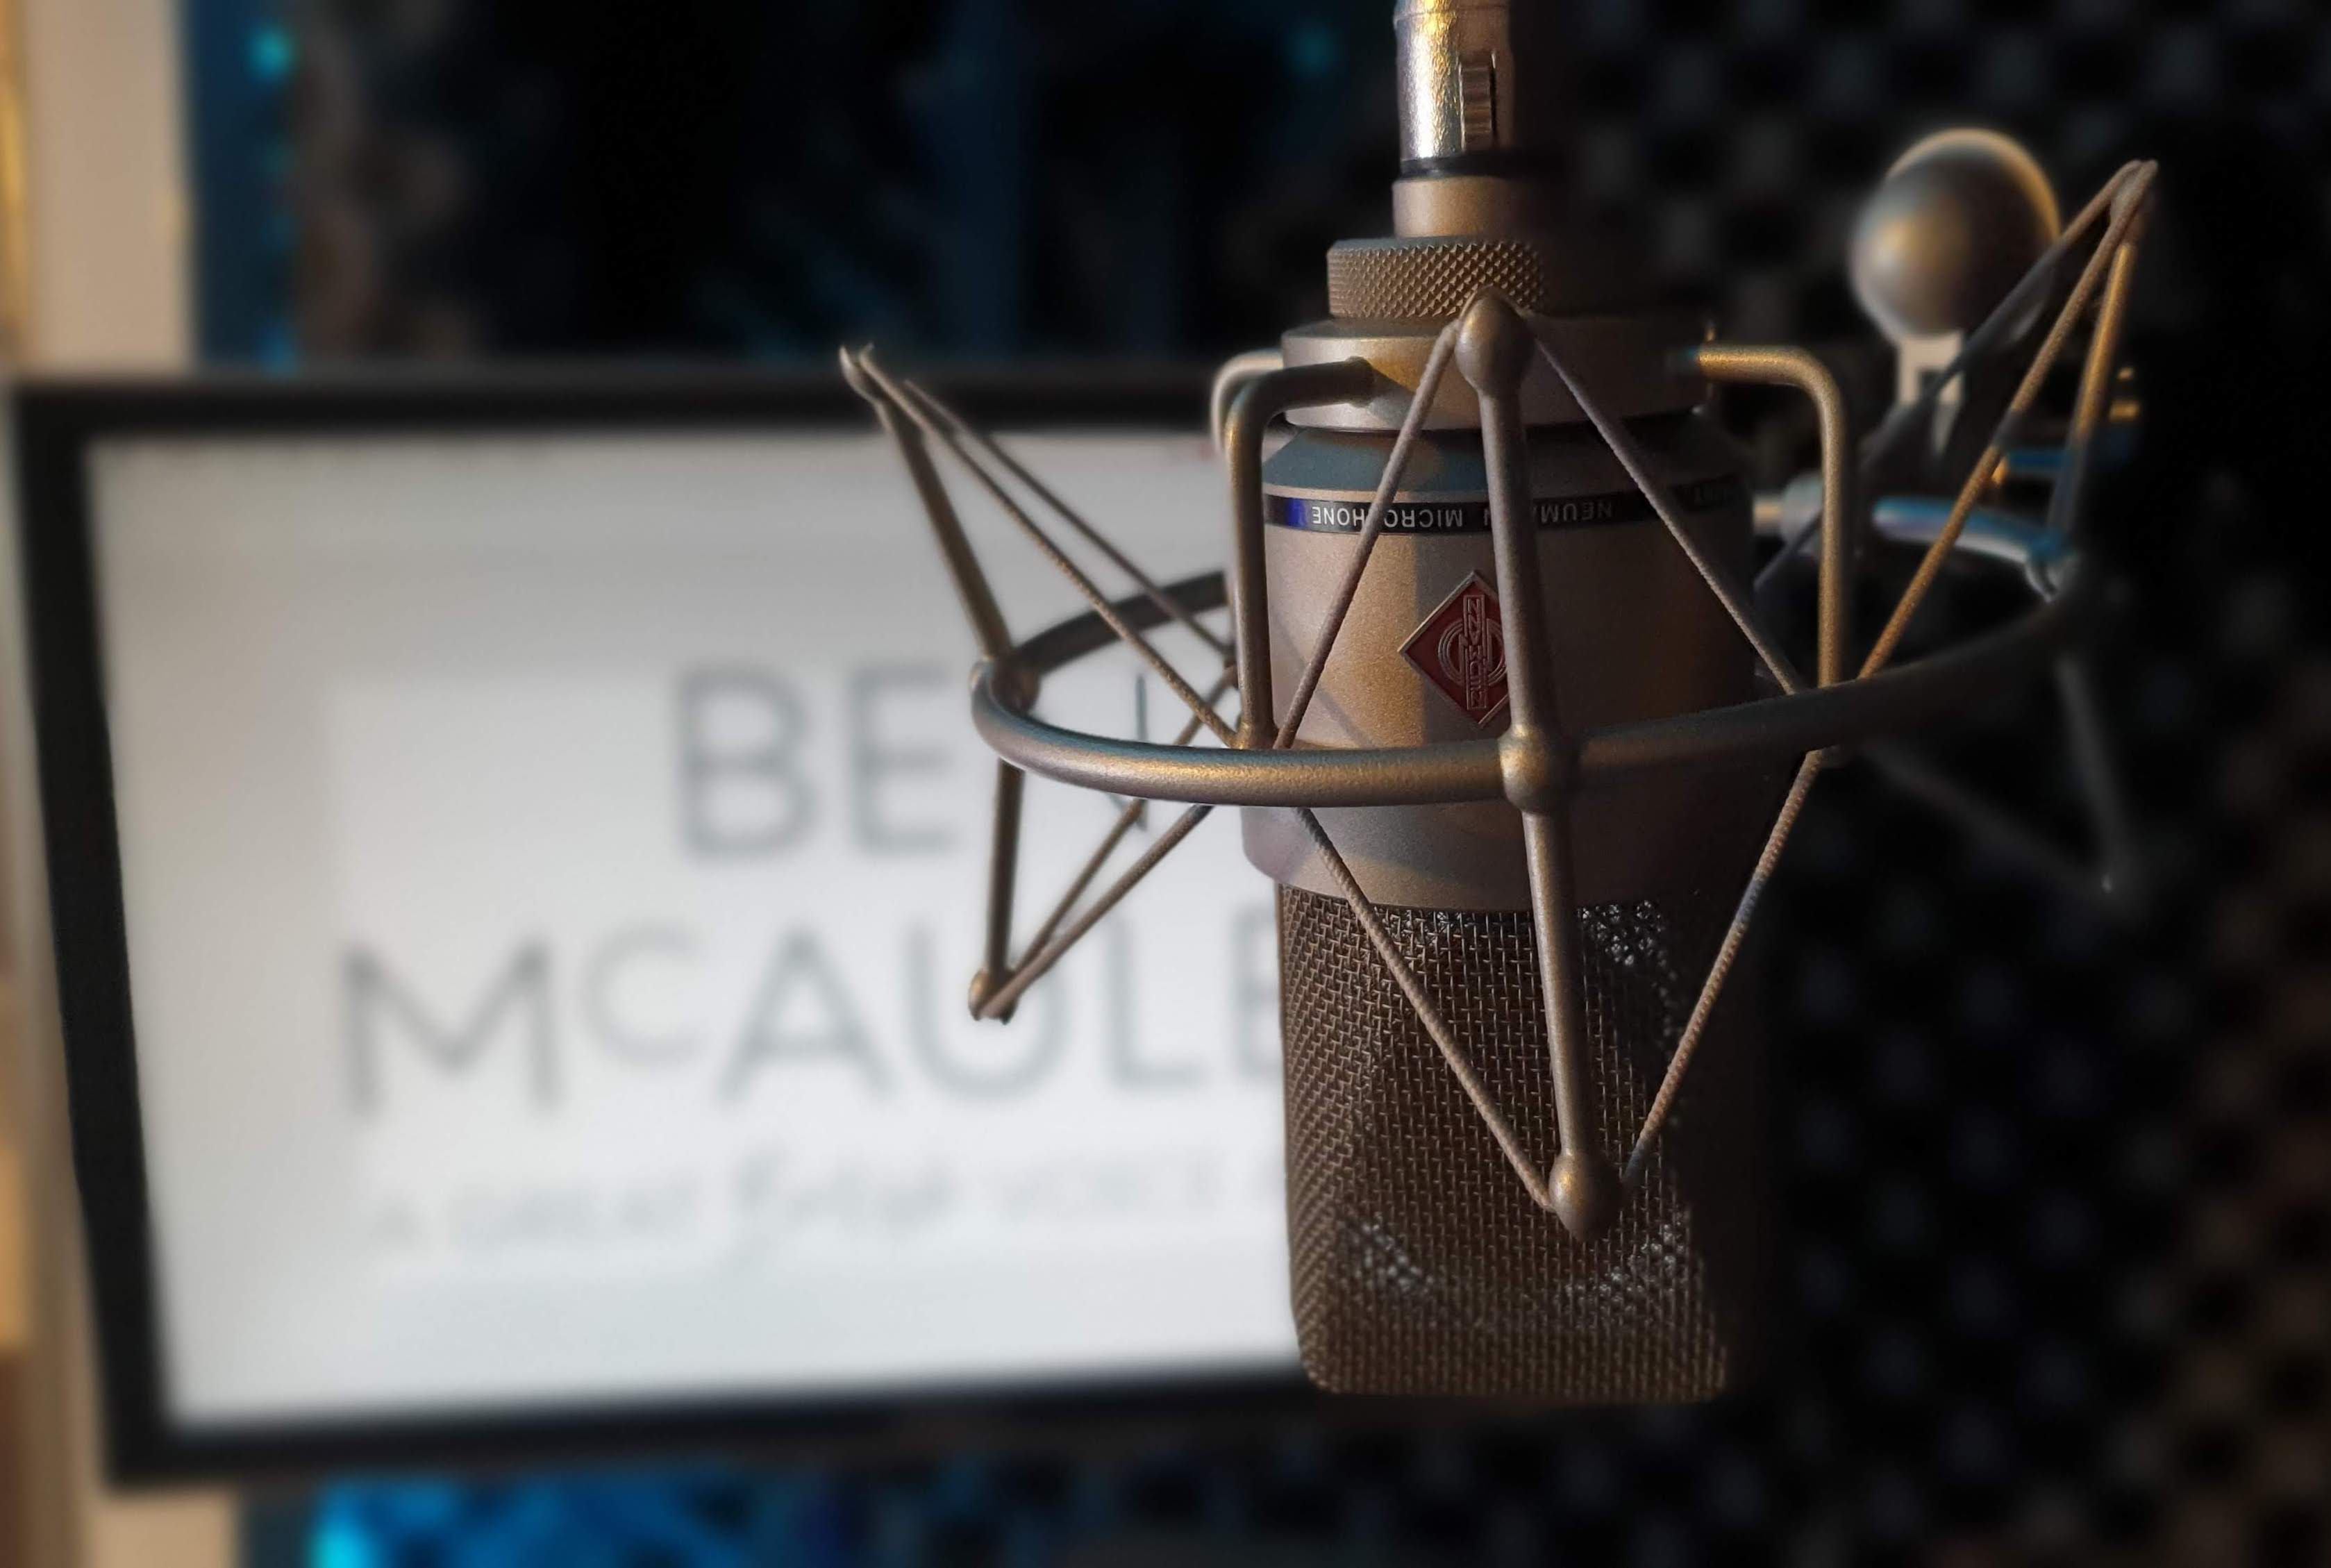 Ben McAuley Voiceover Studio Finder